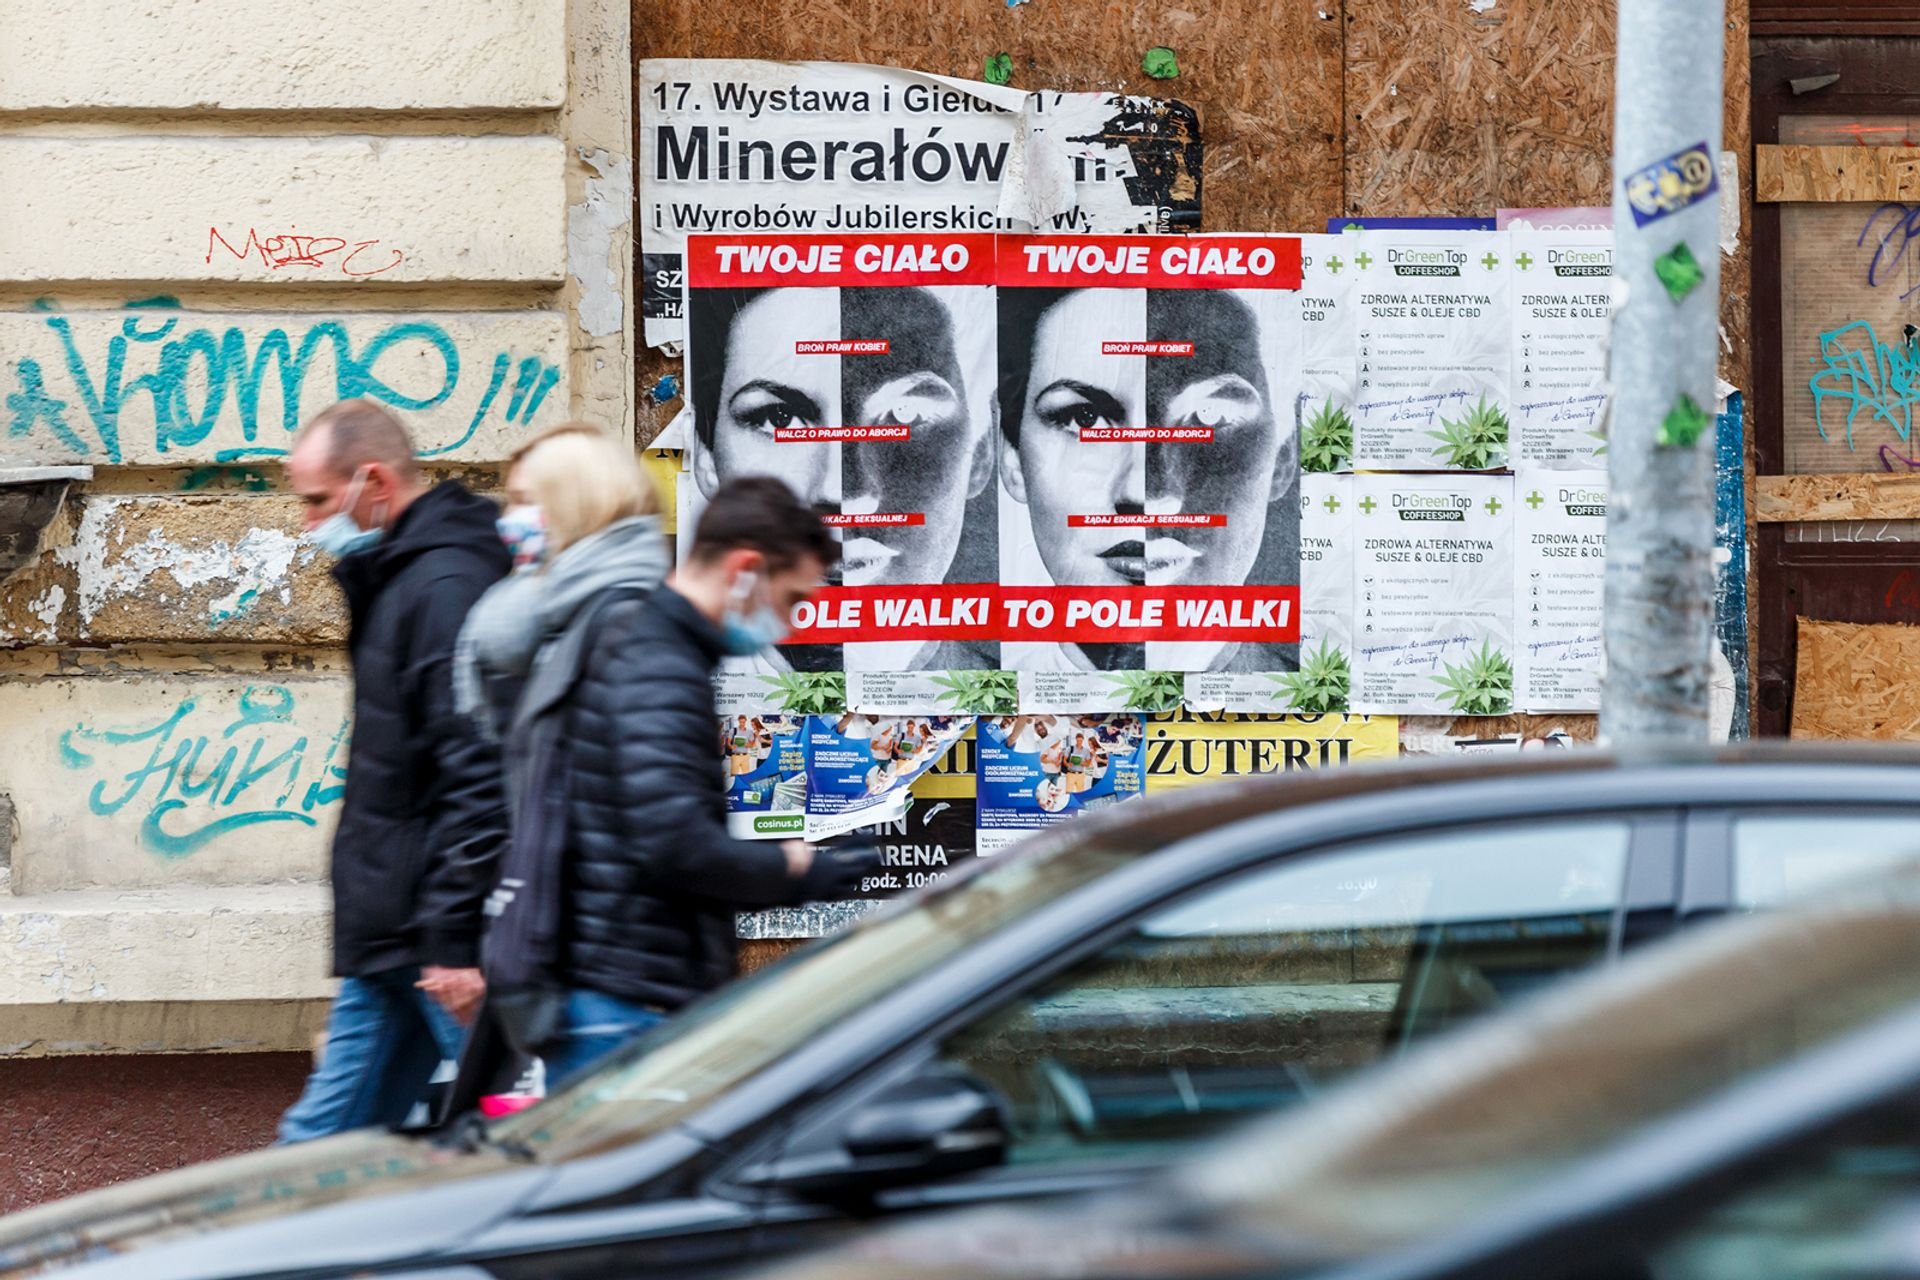 Barbara Kruger's Your Body is a Battleground has been plastered on the streets of Szczecin © Andrzej Golc